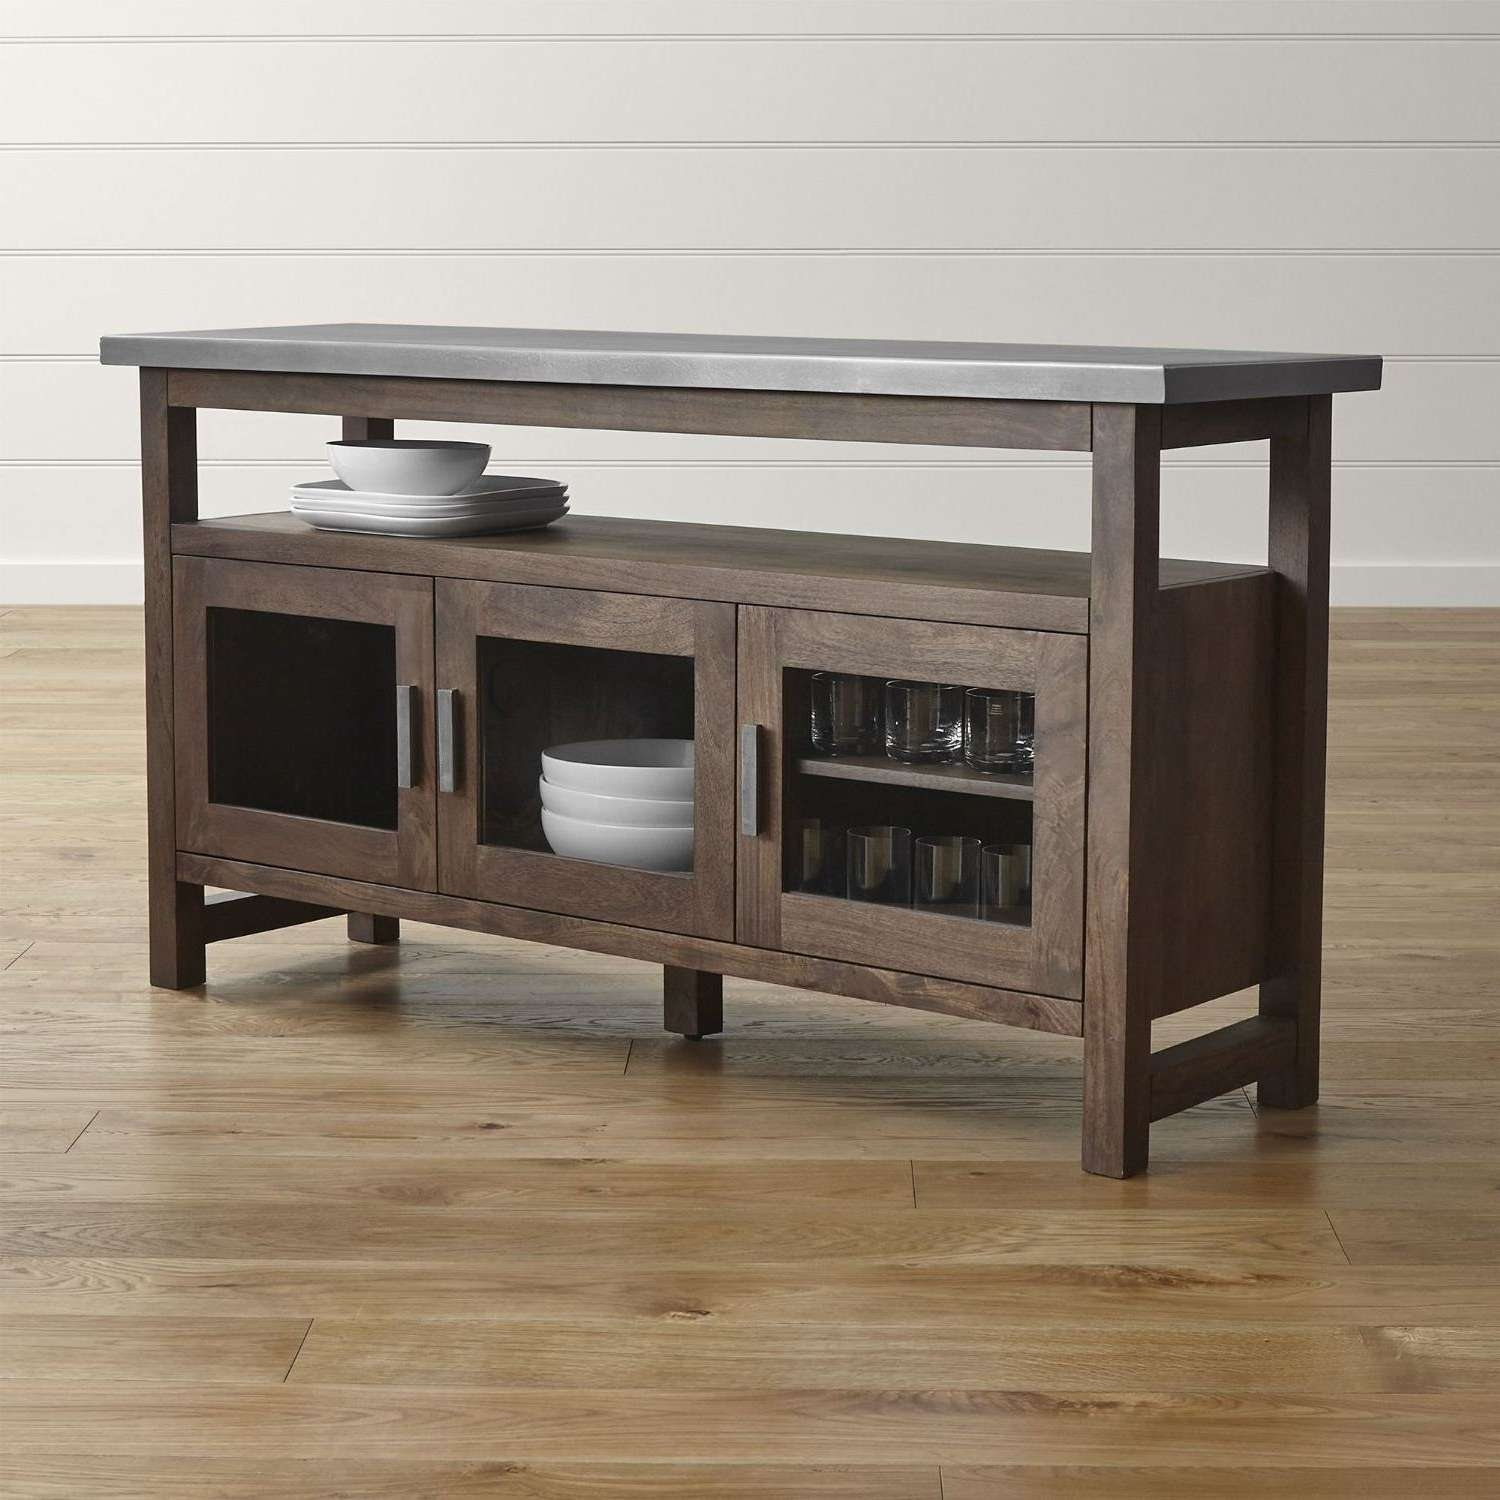 Crate Galvin Sideboard And Barrel – Mykitchenbuddy In Crate And Barrel Sideboards (View 10 of 20)